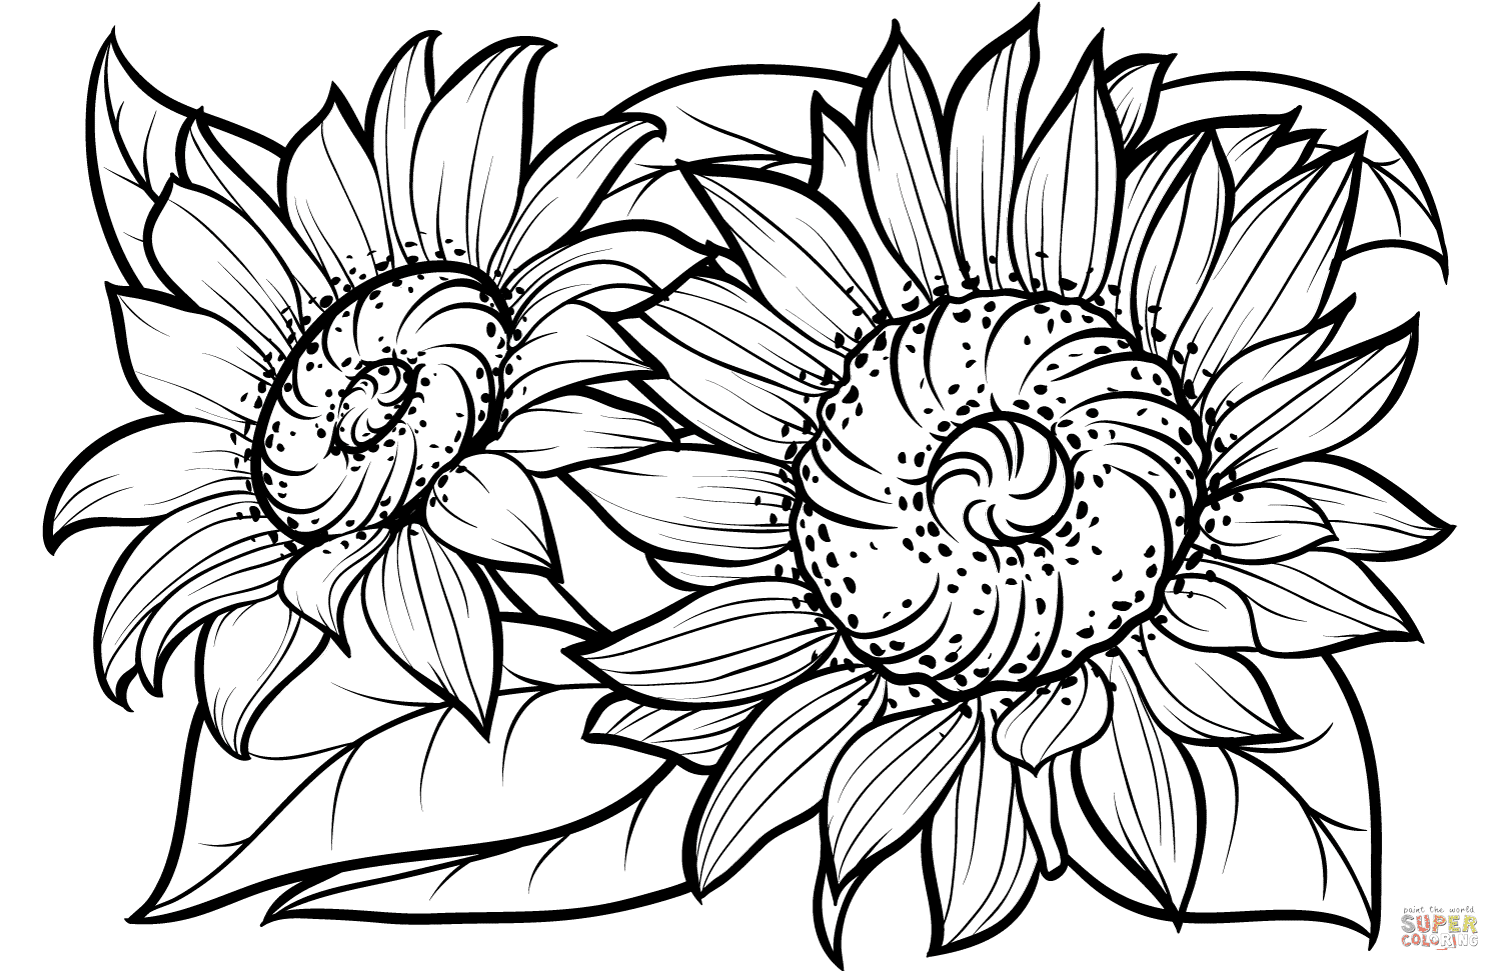 Sunflowers coloring page | Free Printable Coloring Pages